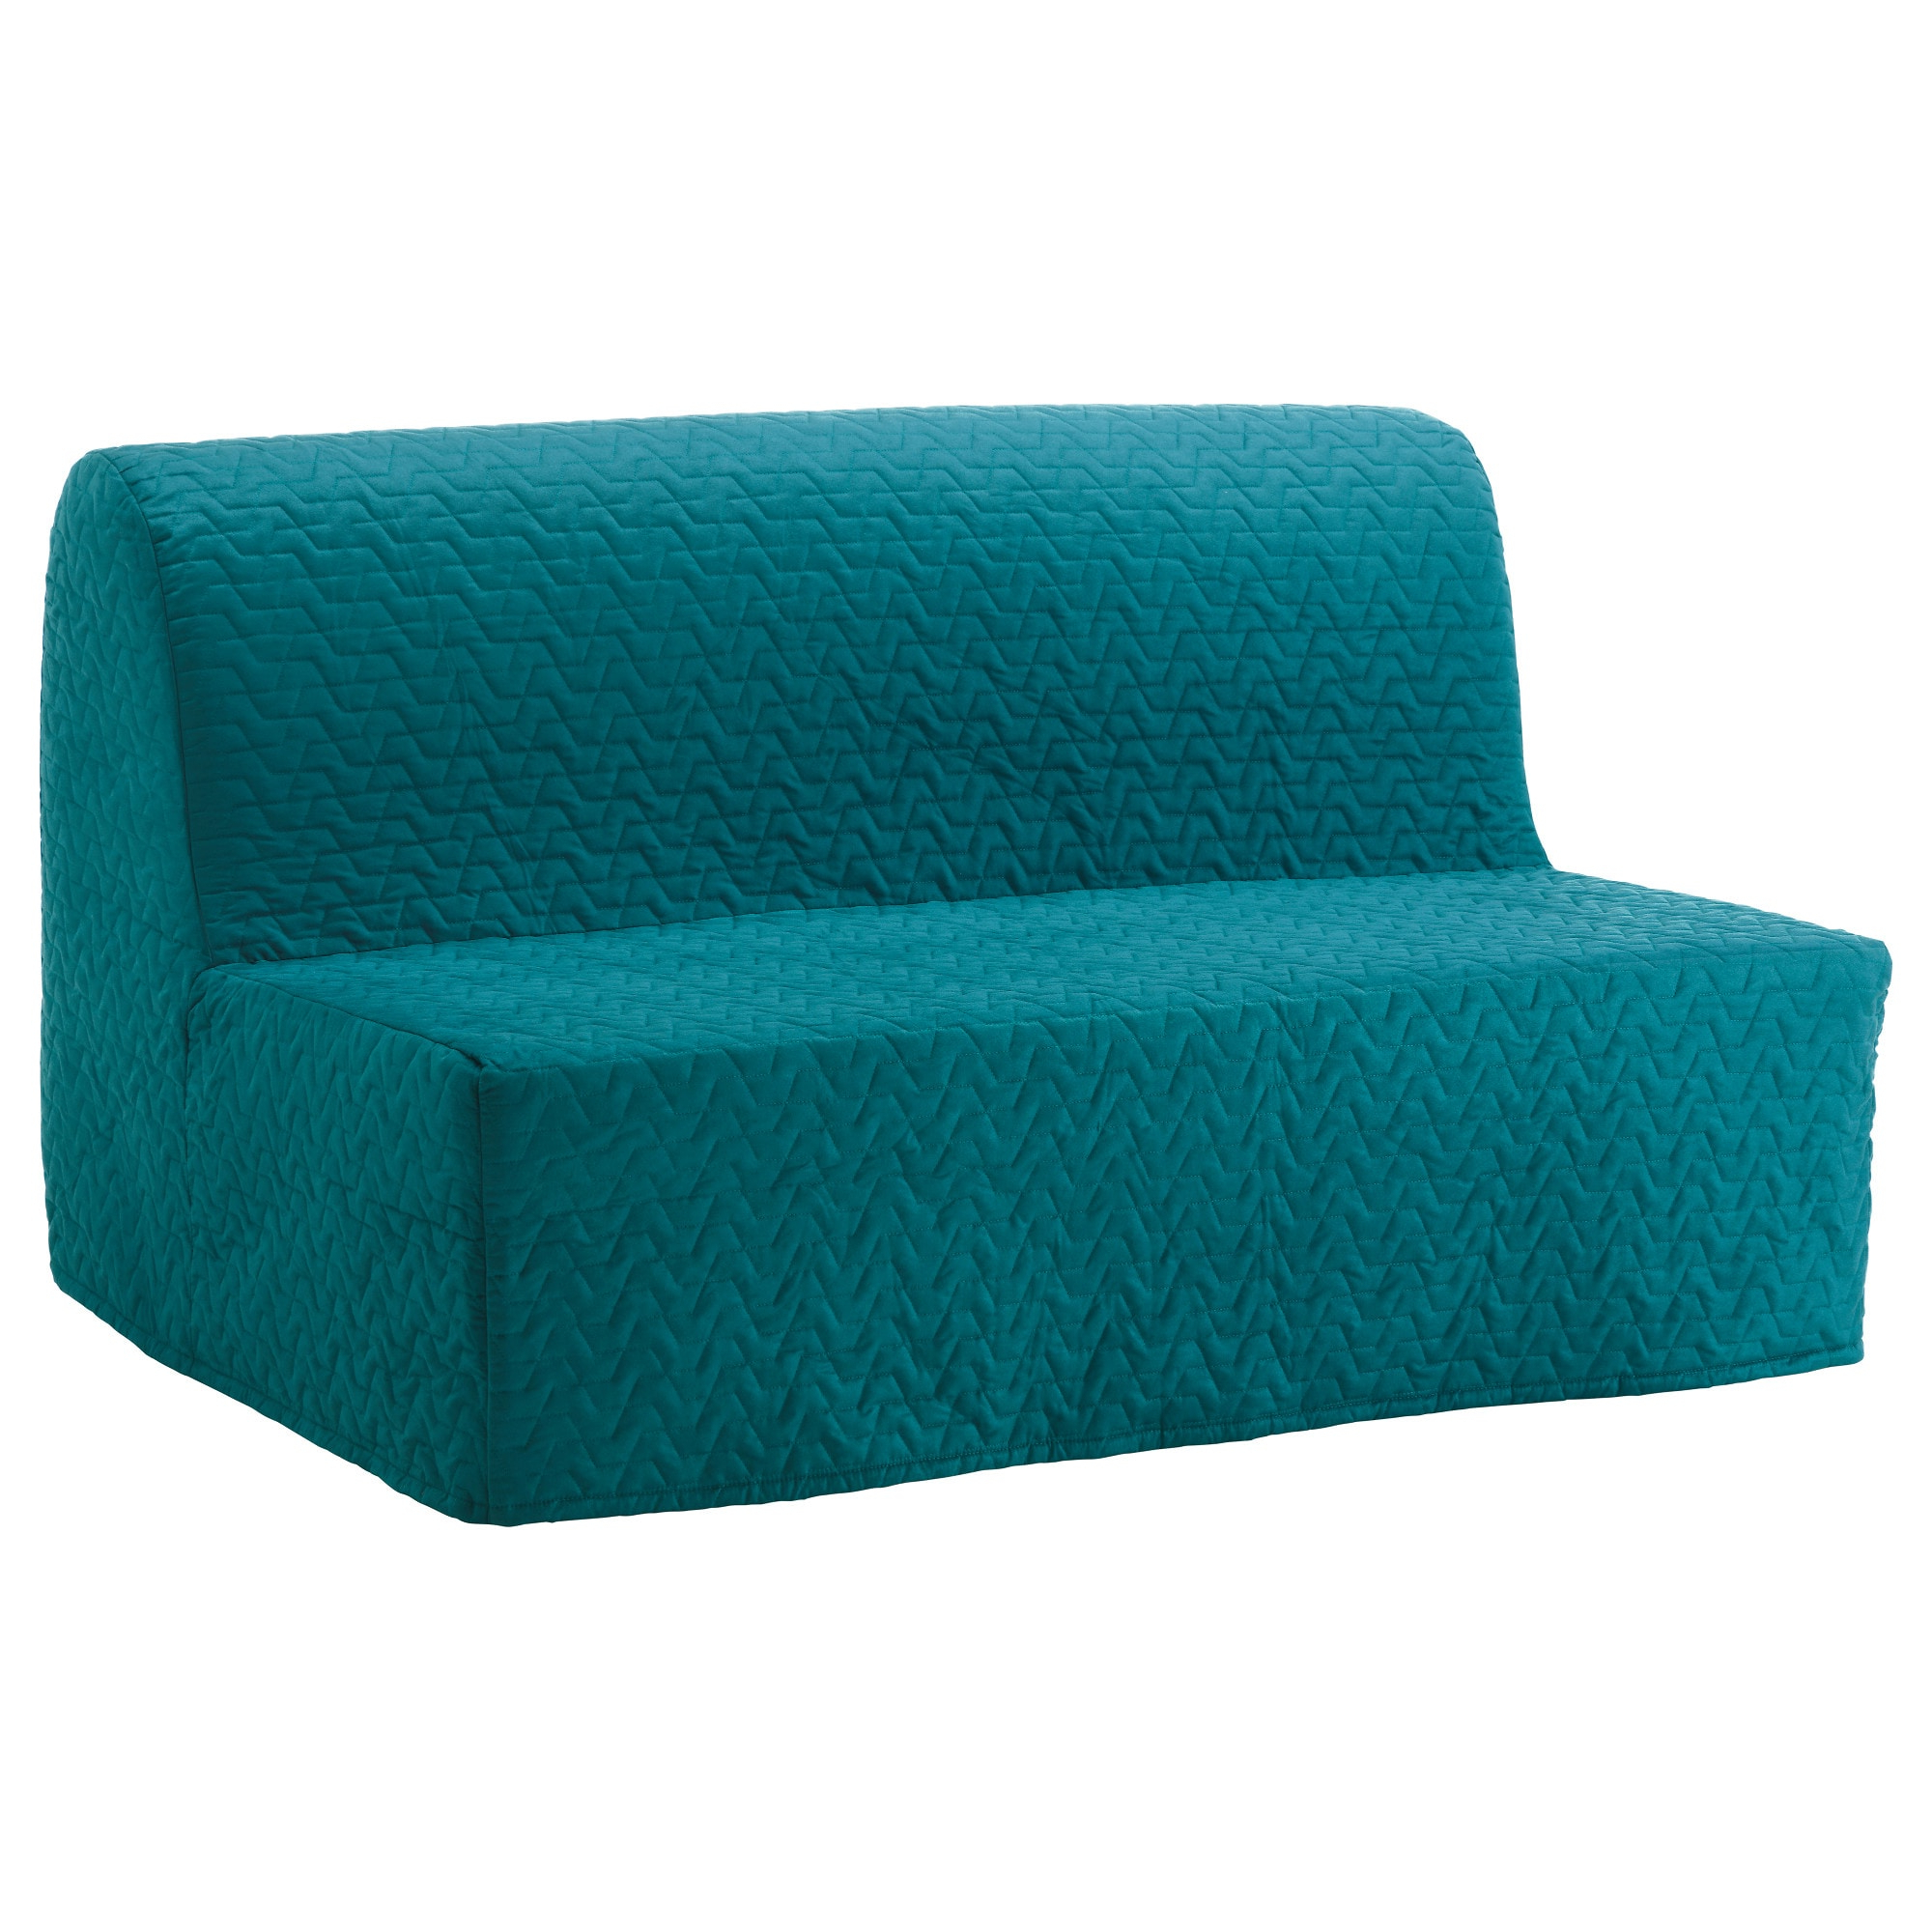 Favorite Single Sofa Bed Chairs In Sofa Beds – Corner Sofa Beds & Futons (View 7 of 20)